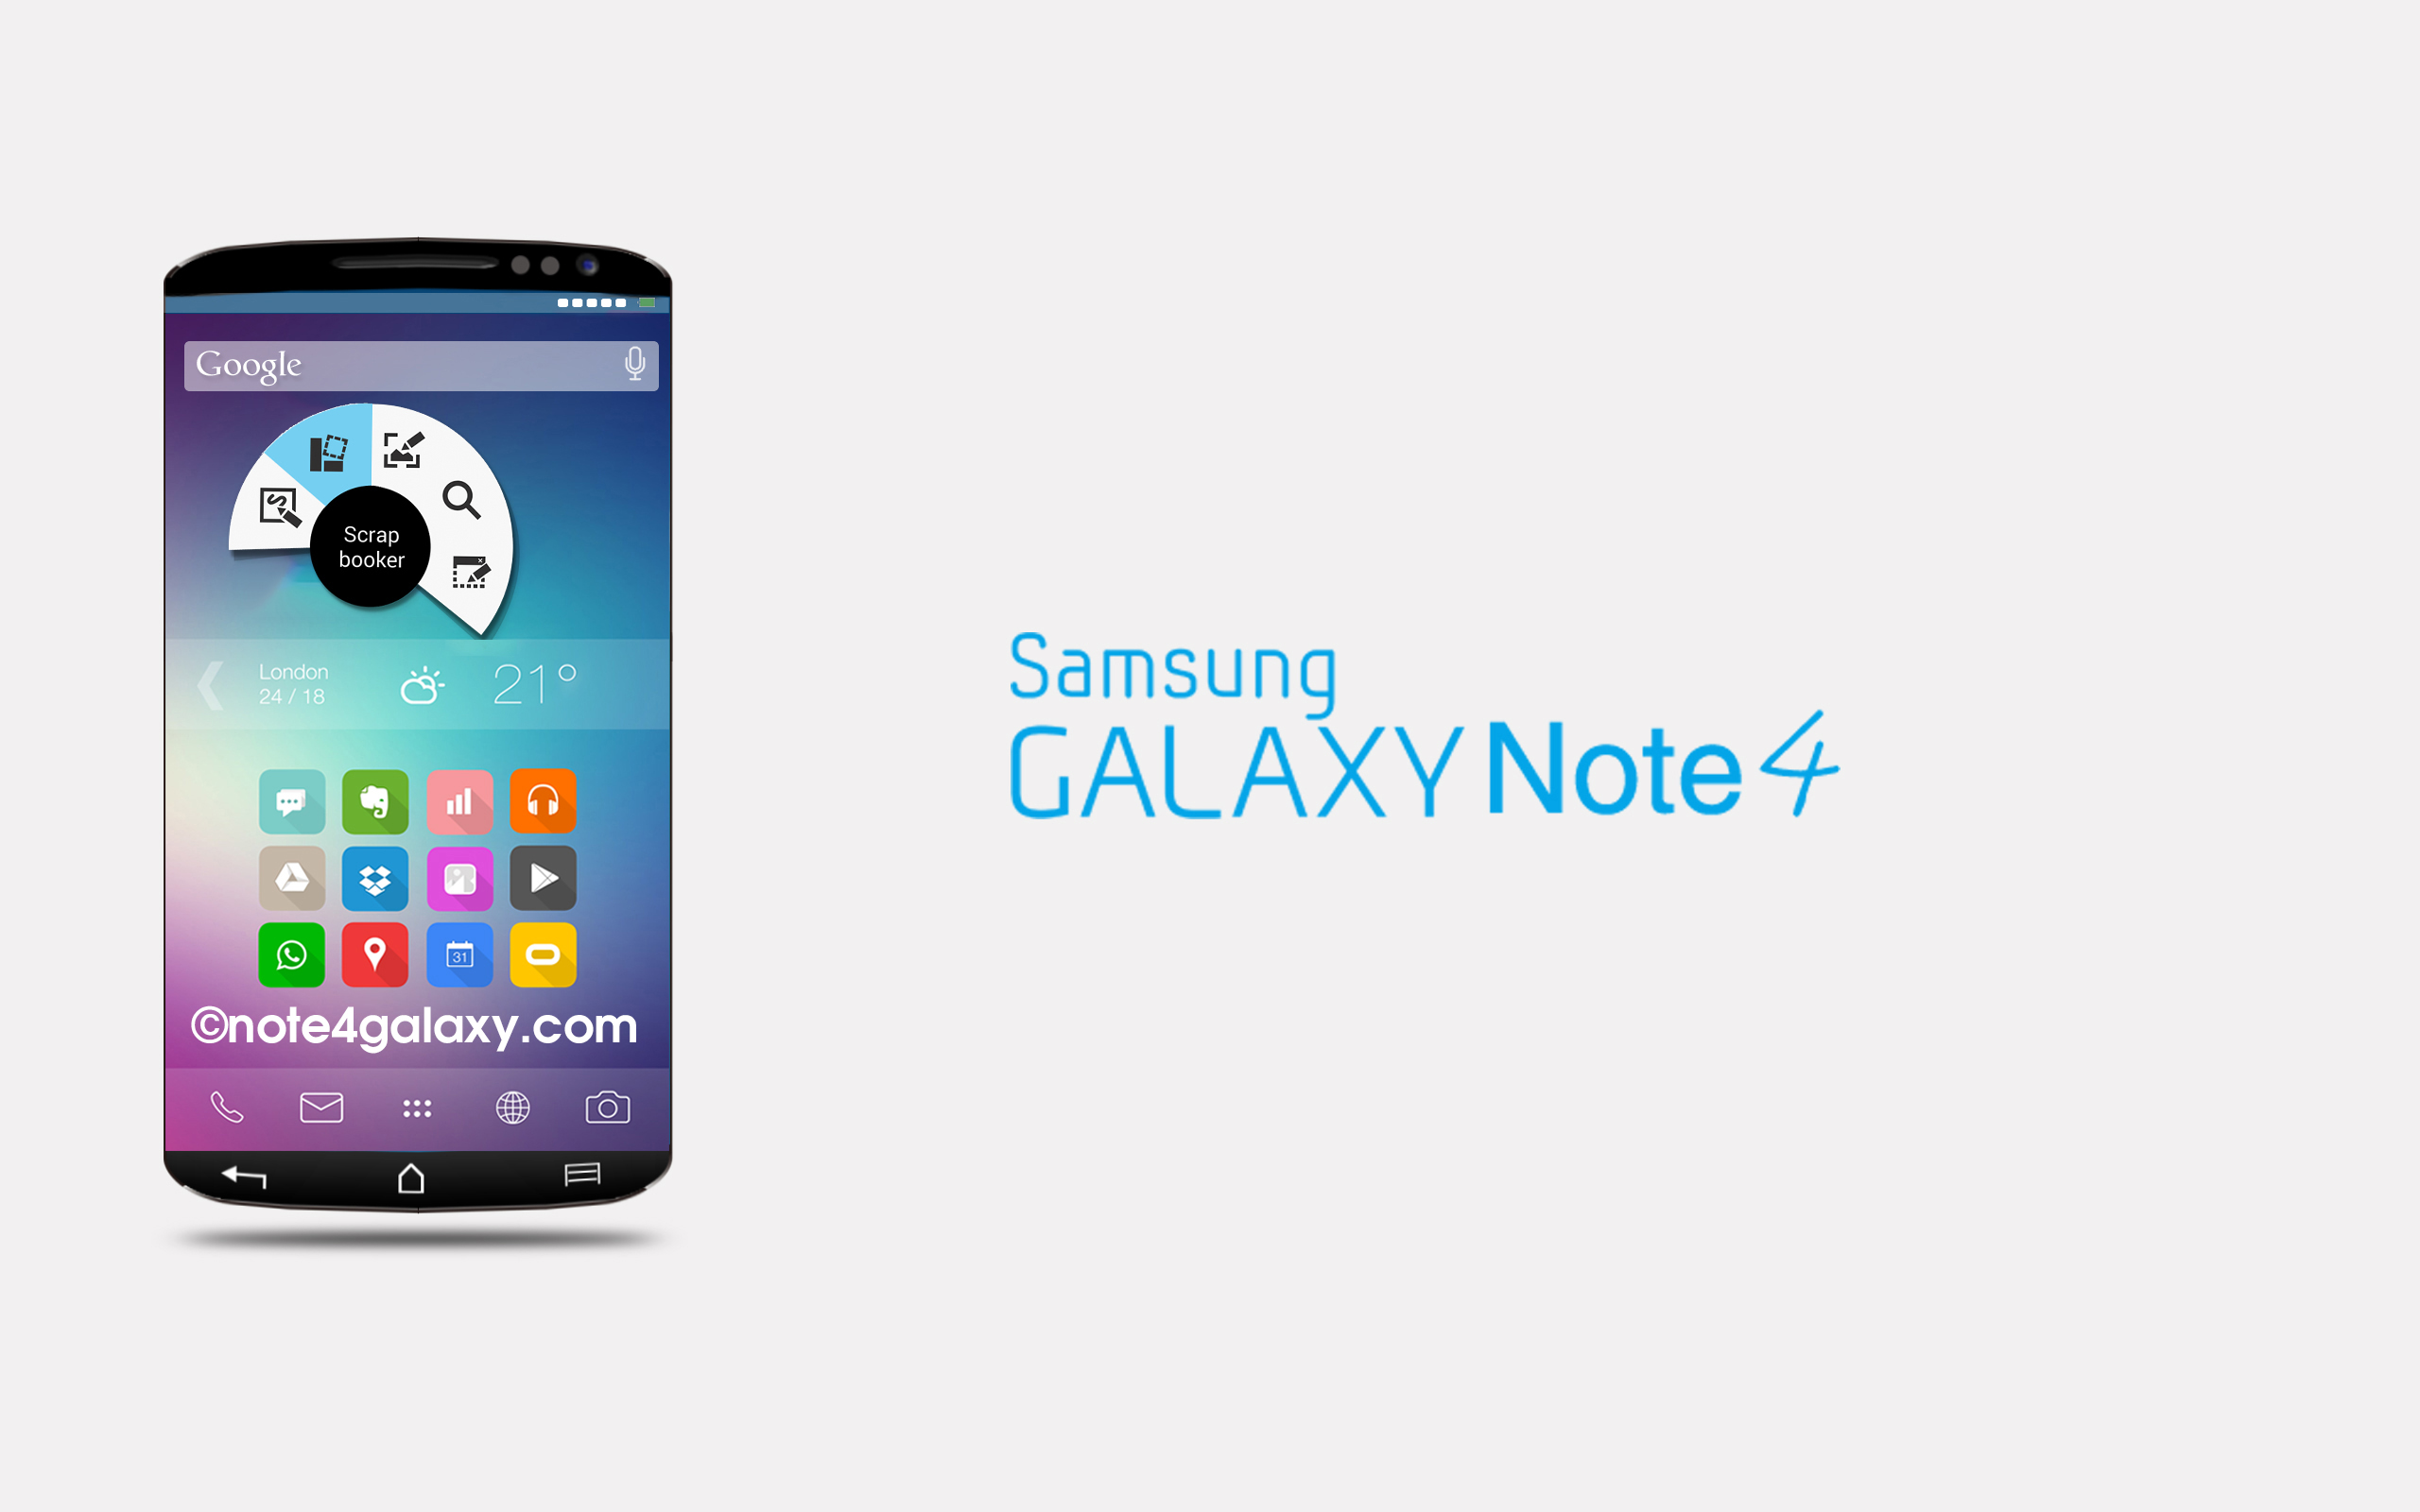 Samsung's Galaxy Note 4 To Get Android 5.1.1 Lollipop By End Of July